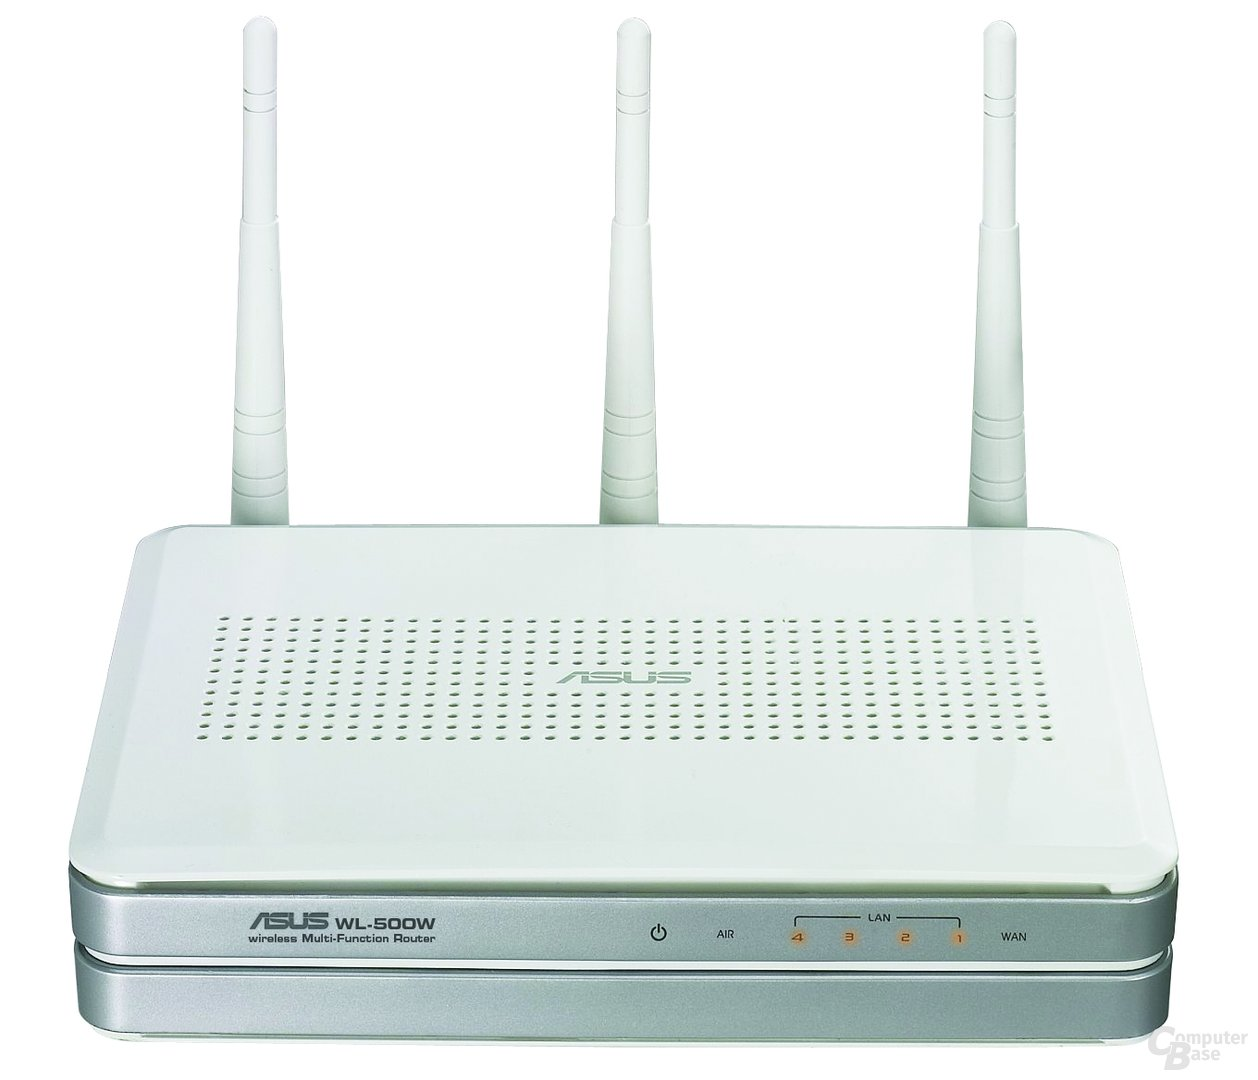 Asus WL-500W Super Speed N Wireless Router